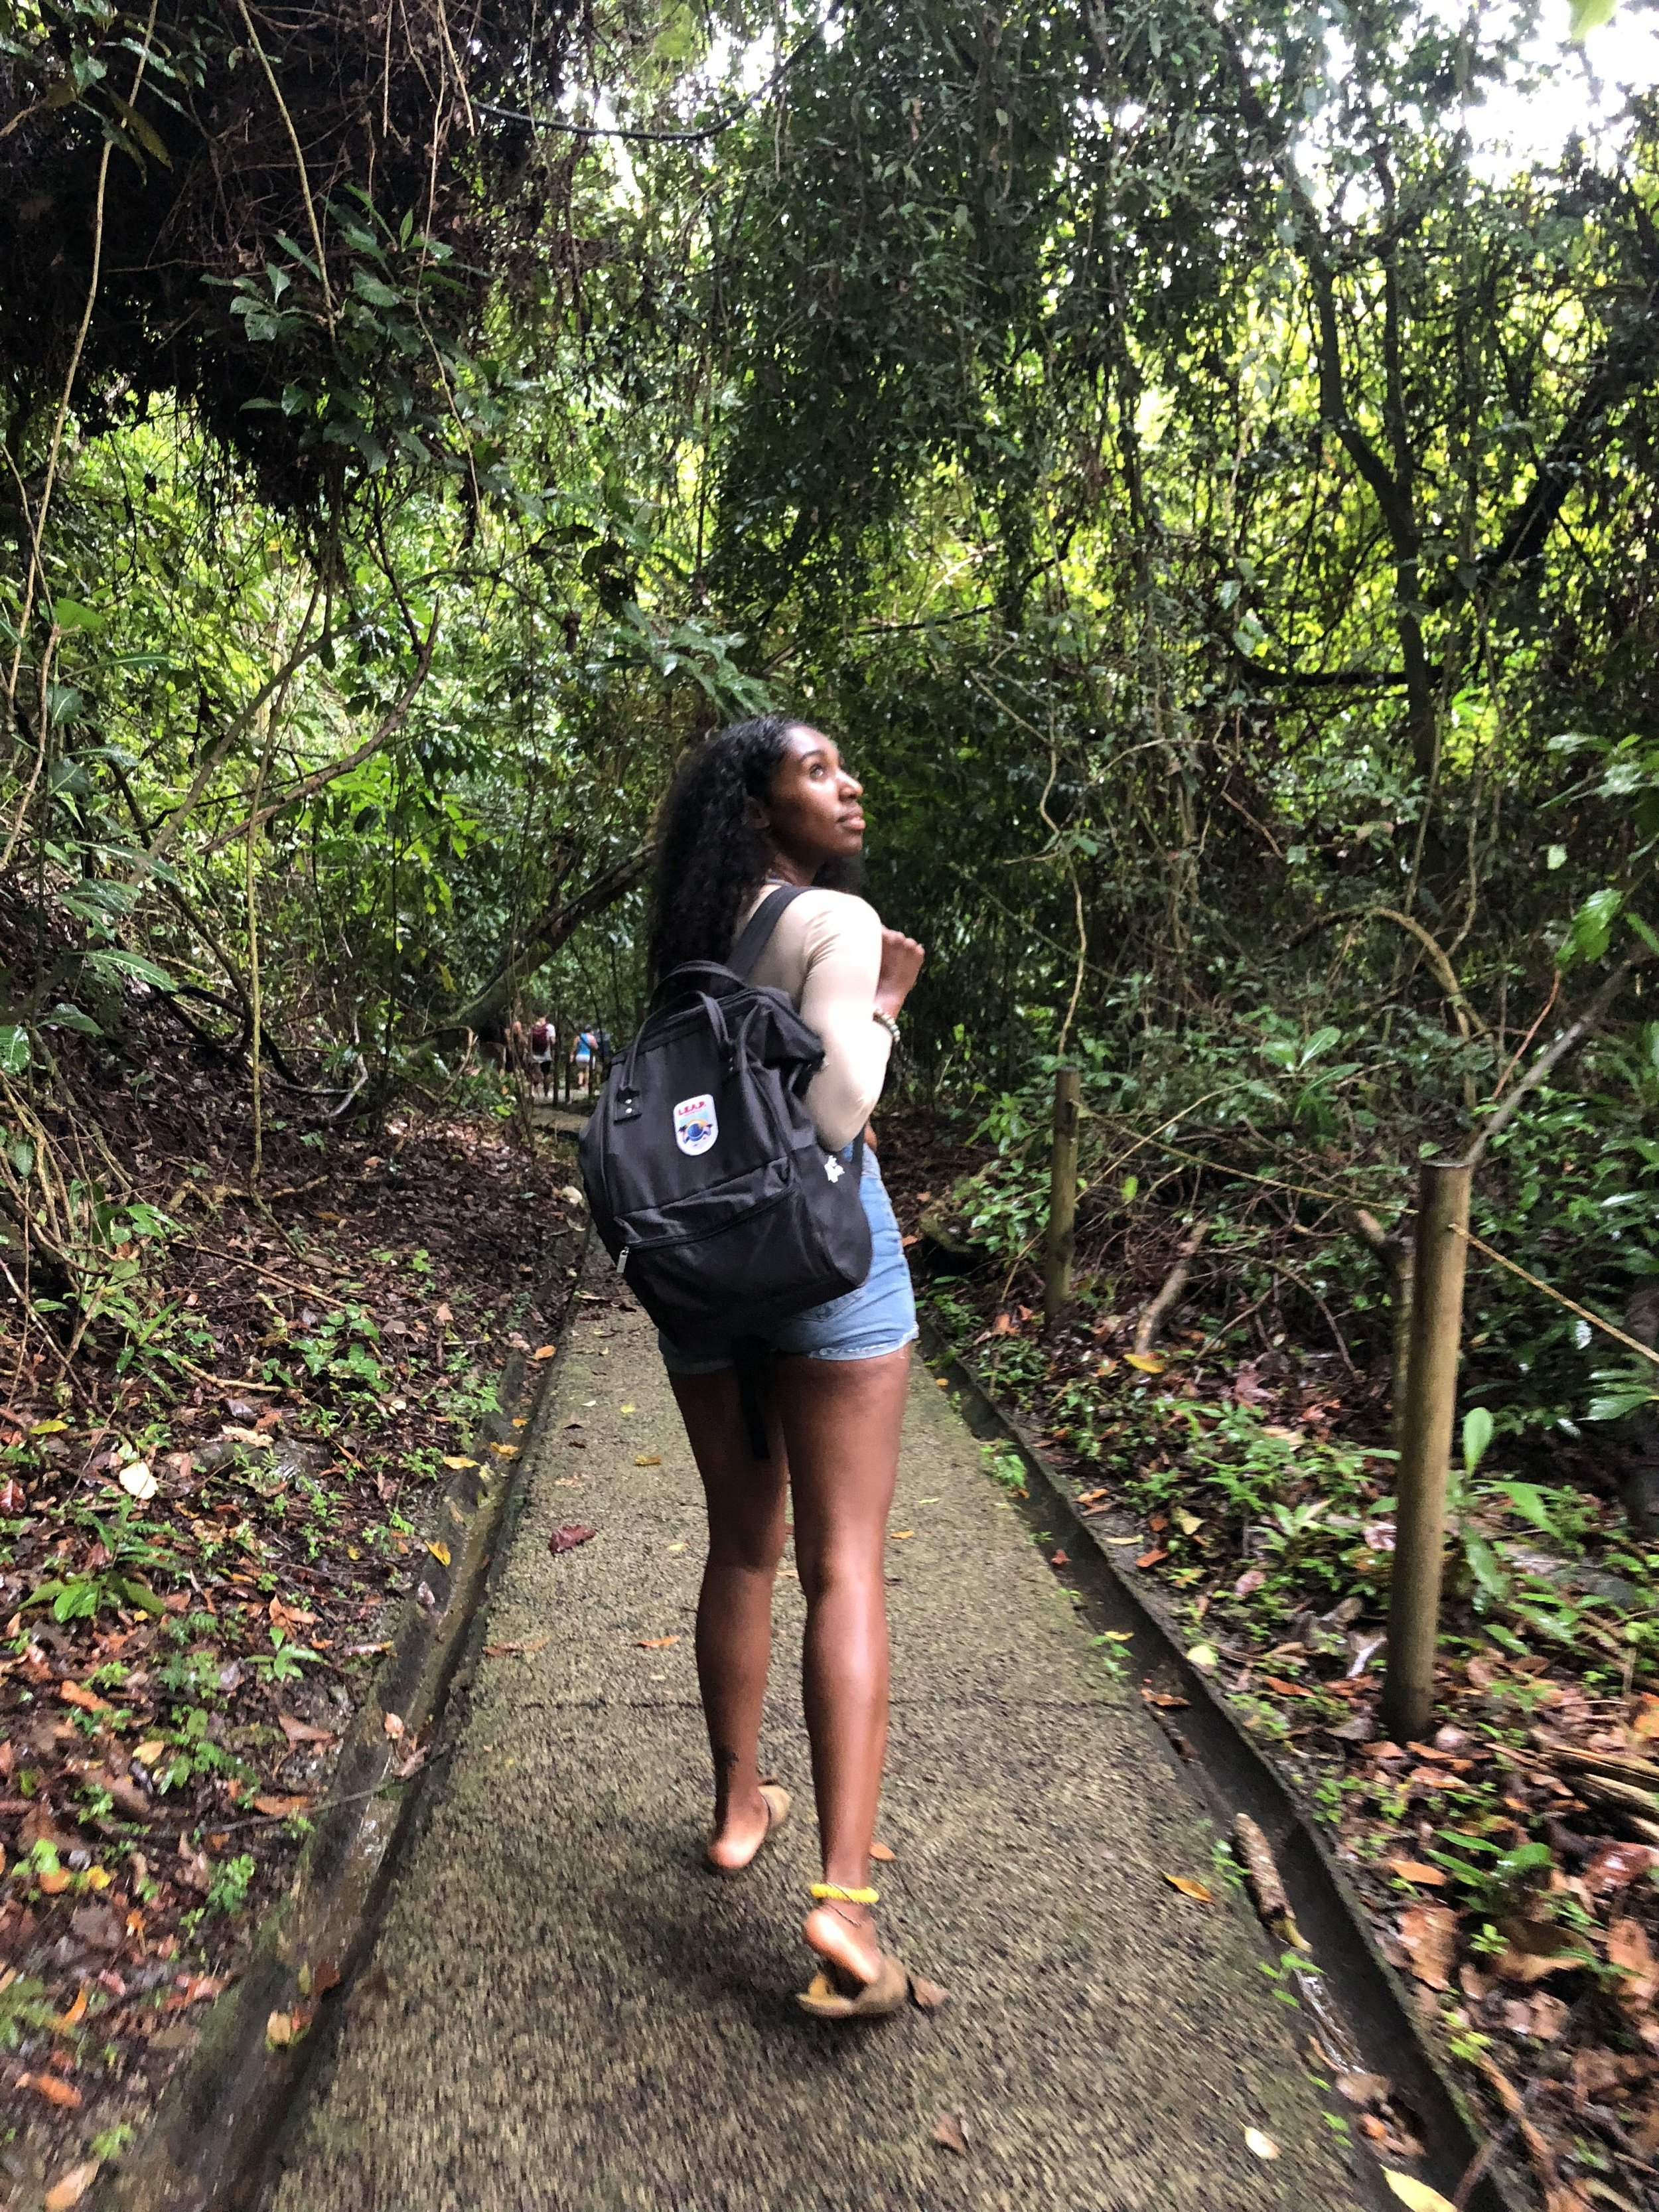 Walking through Manuel Antonio National Park. Also got caught in the rain in the rainforest and ironically, i didn't expect that.